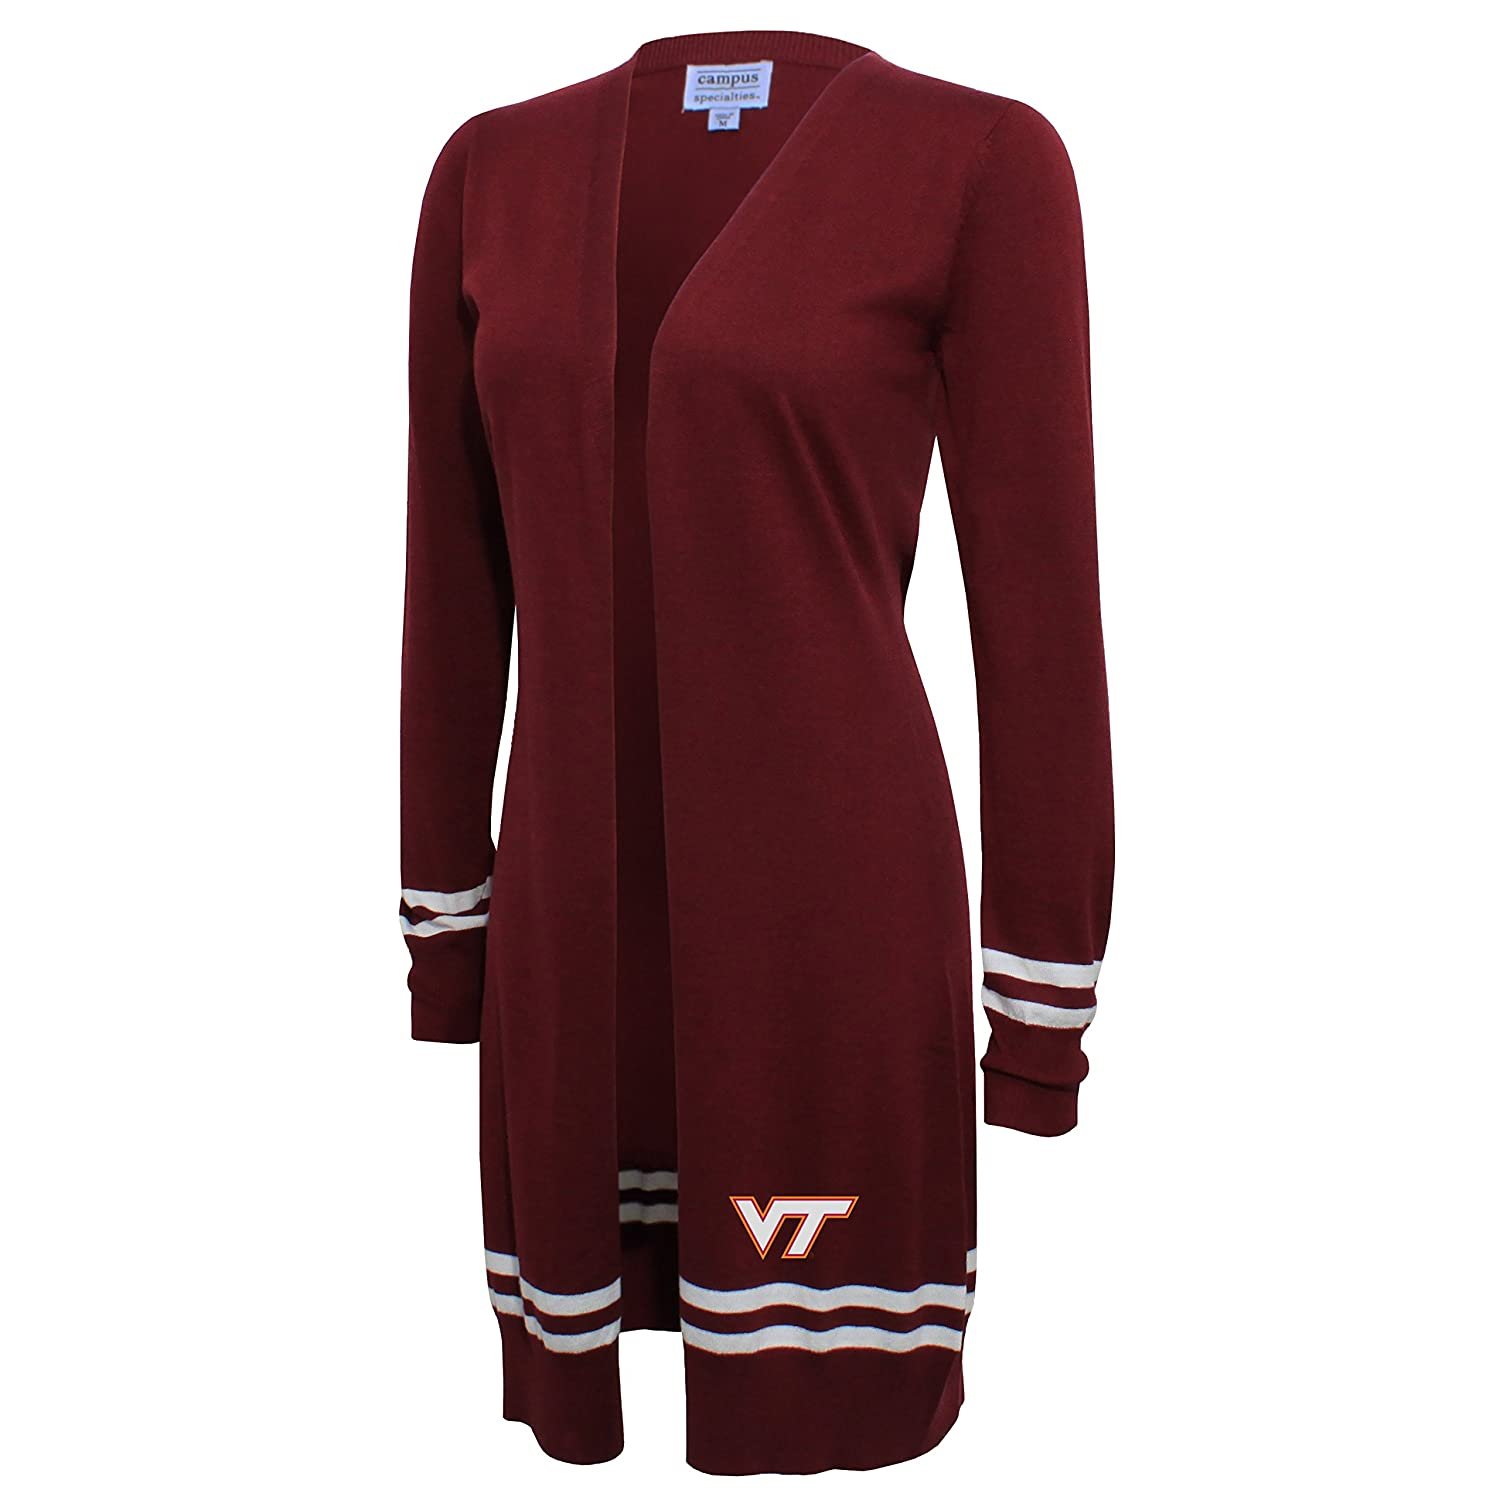 NCAA Womens NCAA Womens Campus Specialties Long Open Cardigan